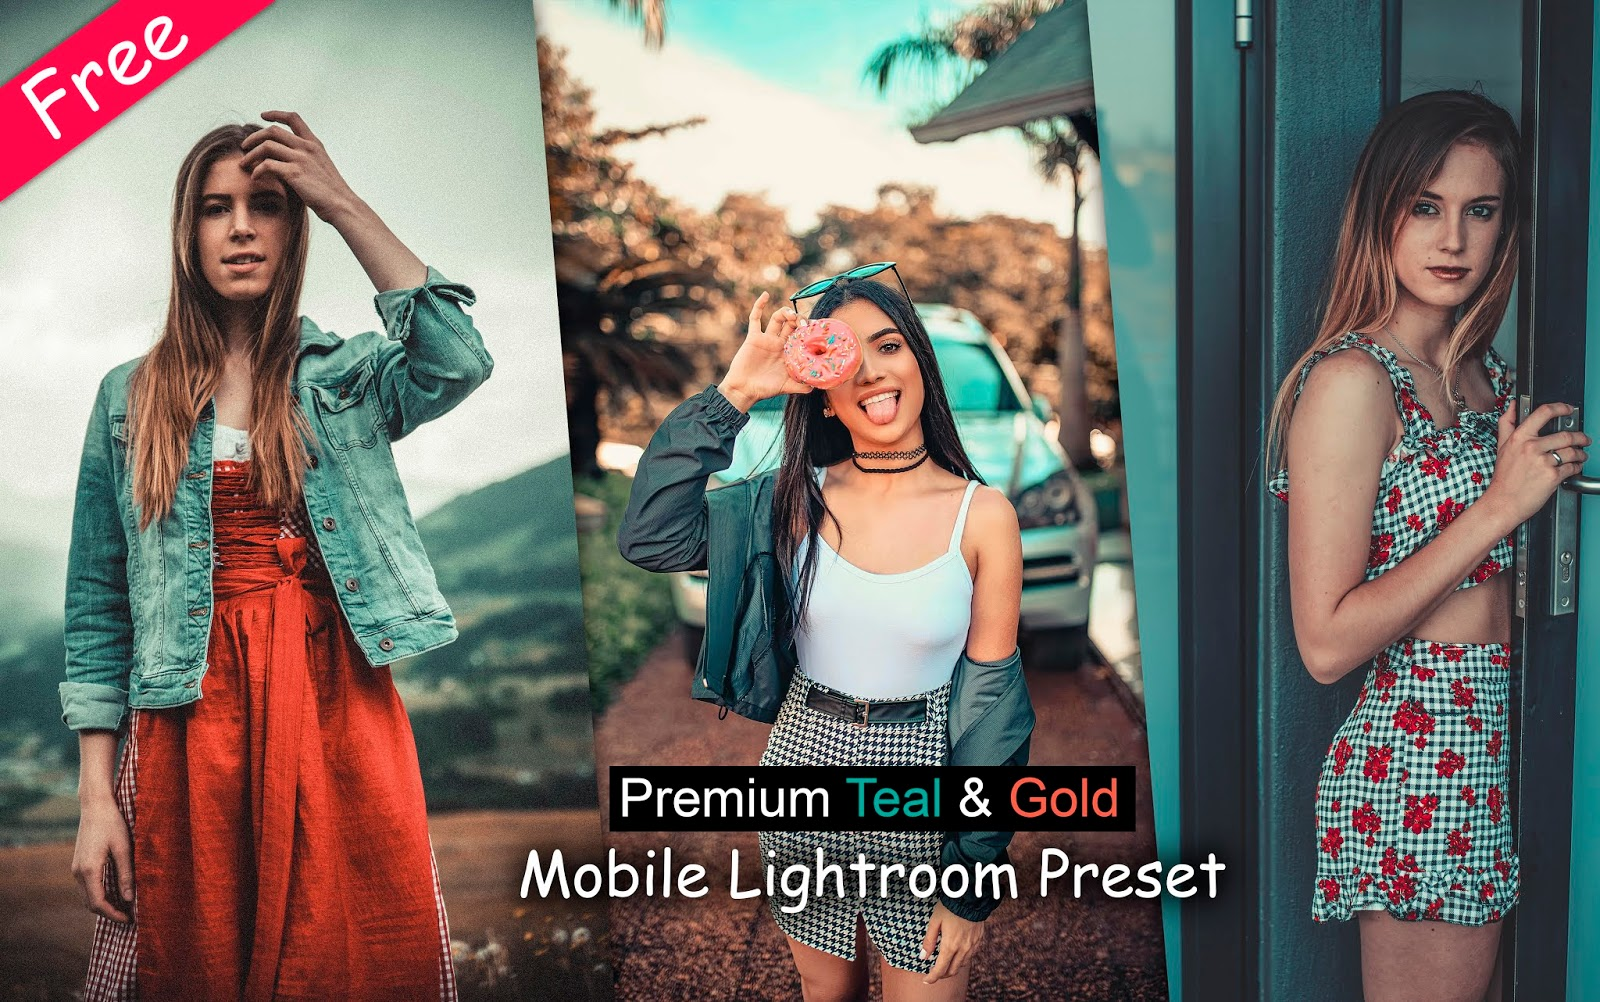 Download Premium Teal & Gold Mobile Lightroom Preset for Free | How to Edit Teal & Orange in Mobile Lightroom